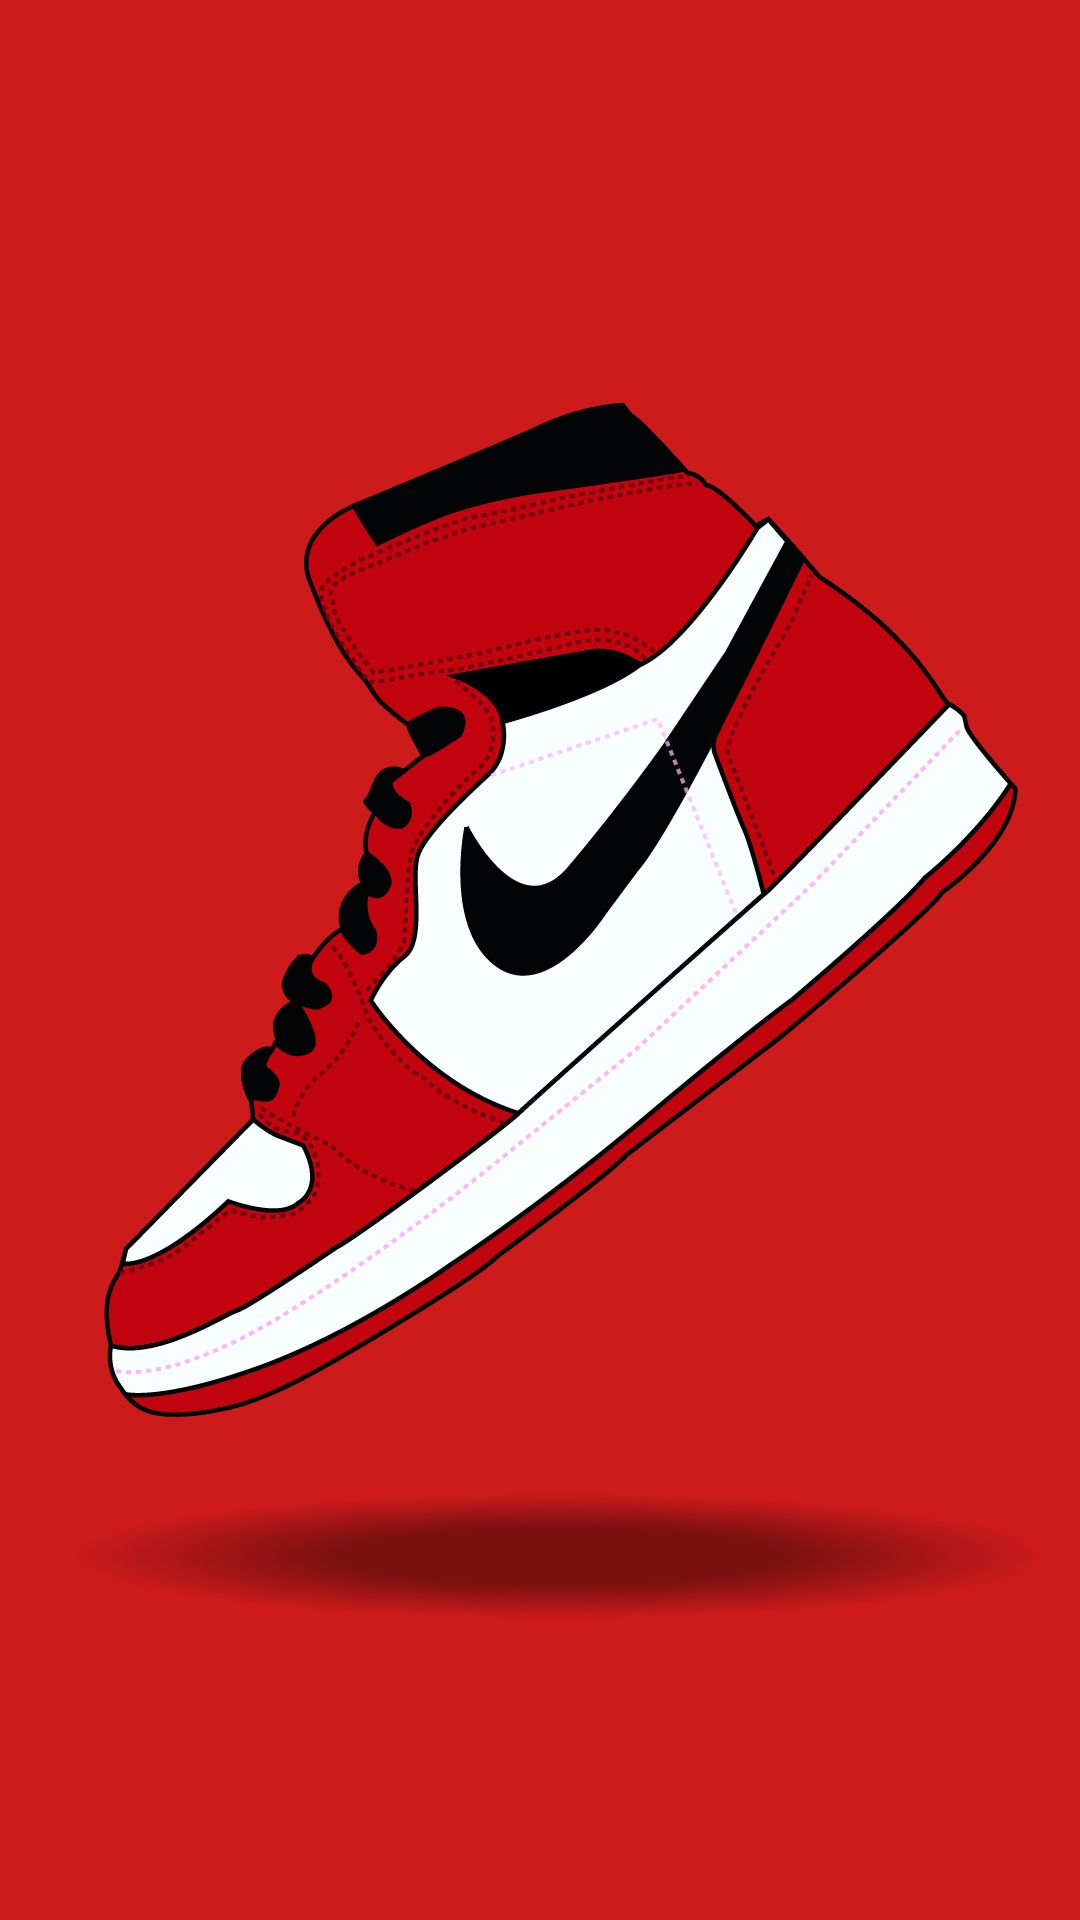 Nike Air Jordan 1 Android/iPhone X 1080p wallpaper Nike